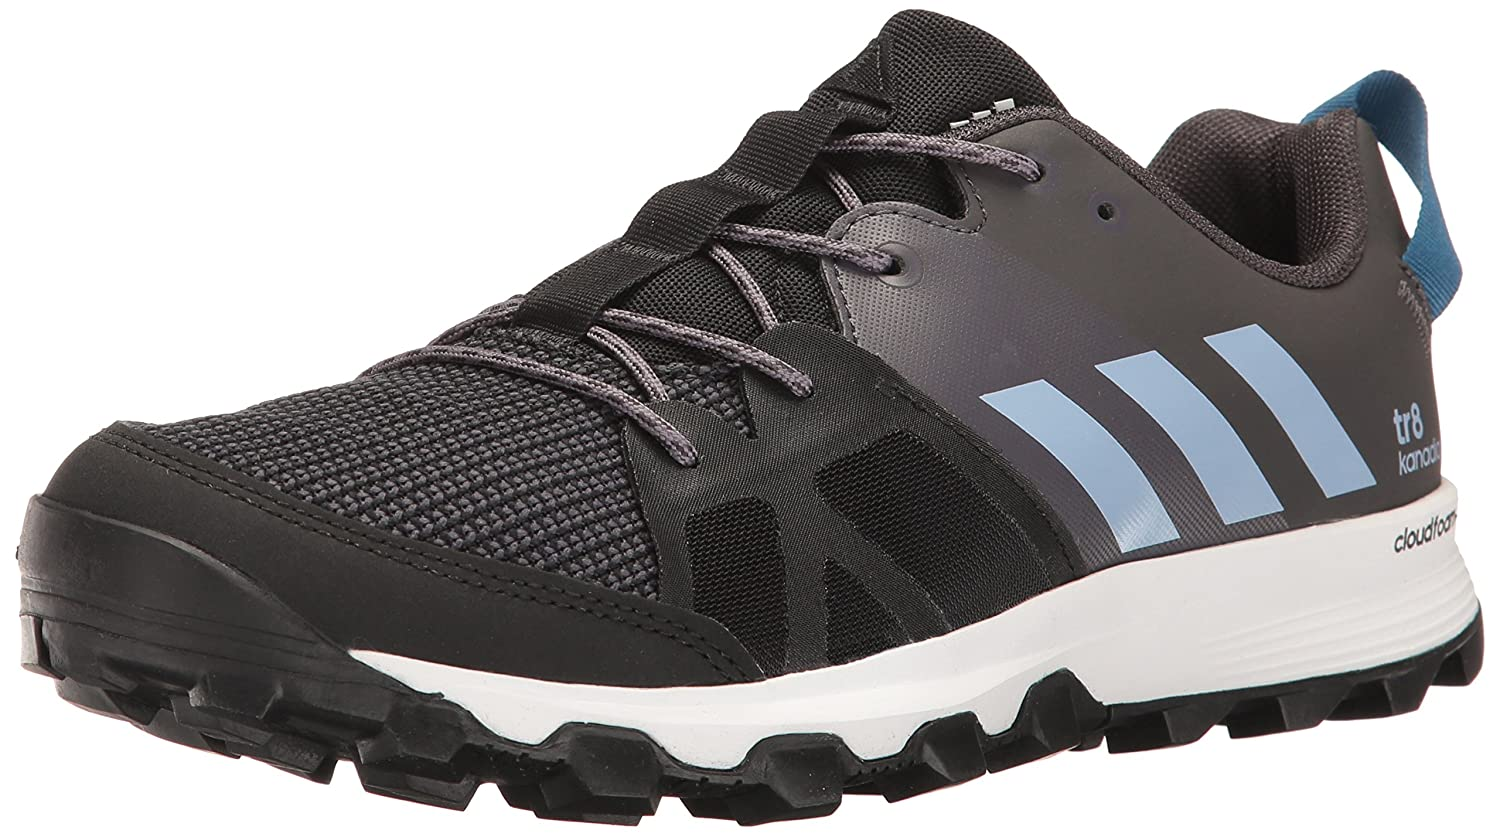 Amazoncom  adidas outdoor Mens Kanadia 8 TR Trail Running Shoe  Trail Running